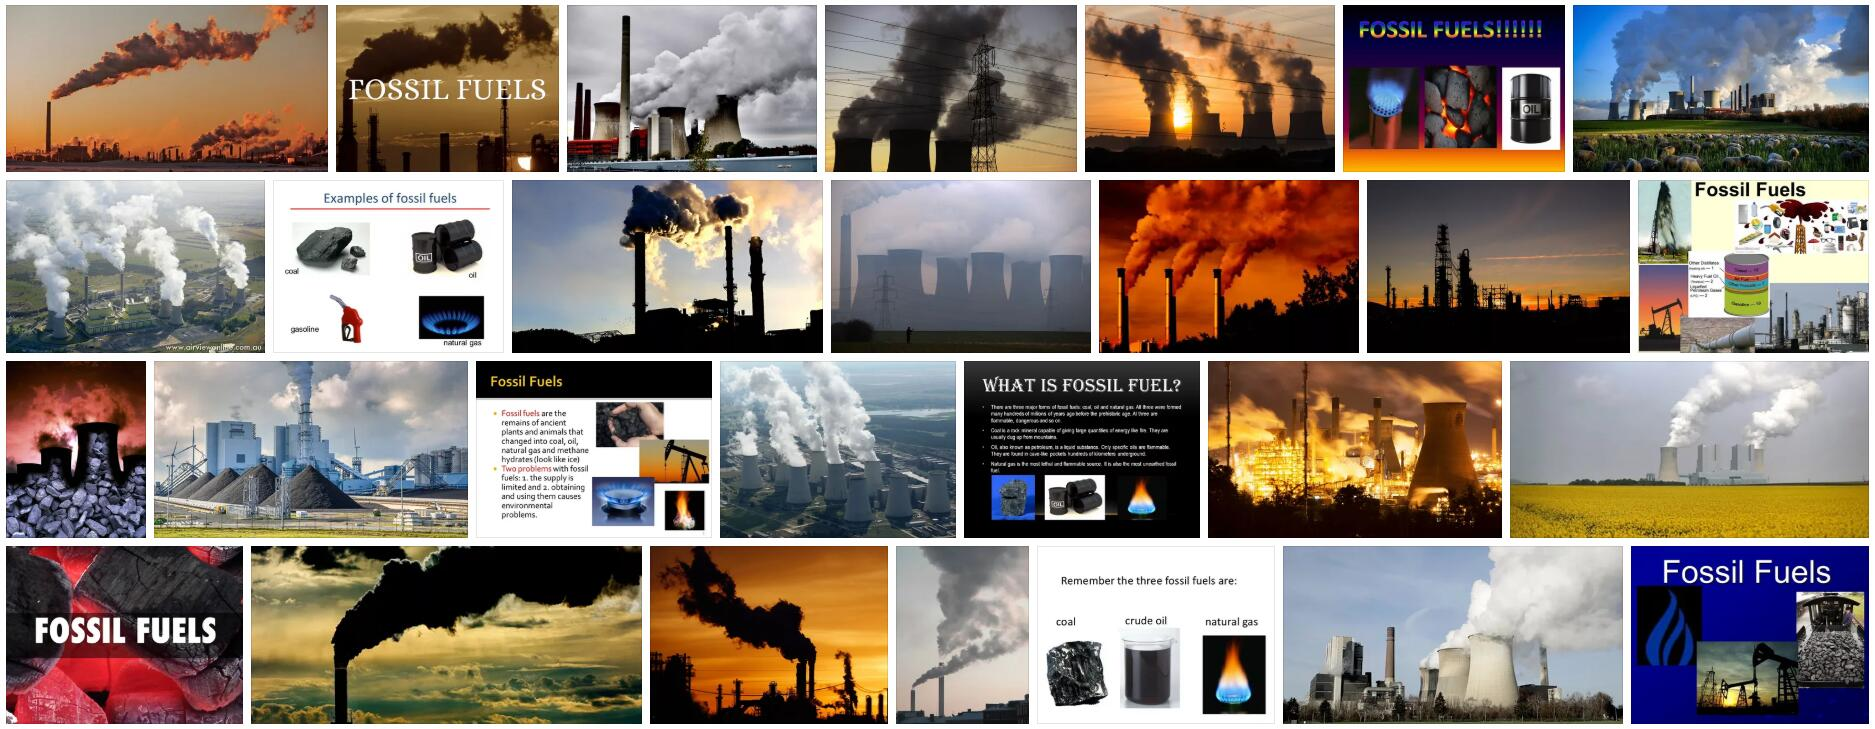 What is fossil fuel